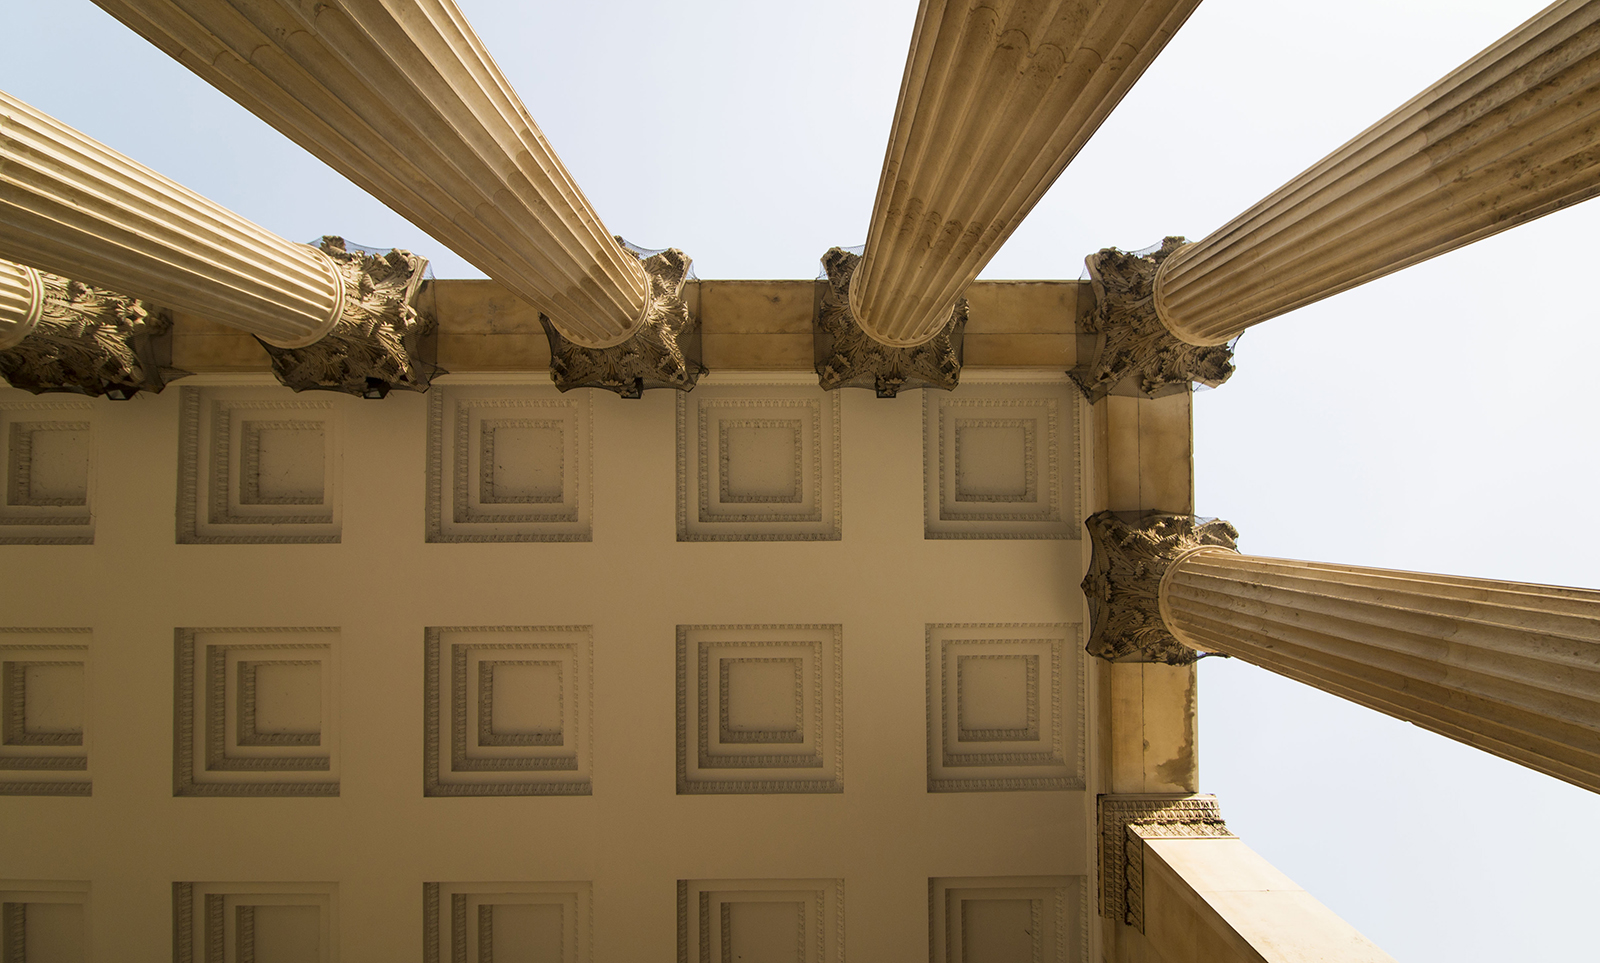 Looking up at the portico